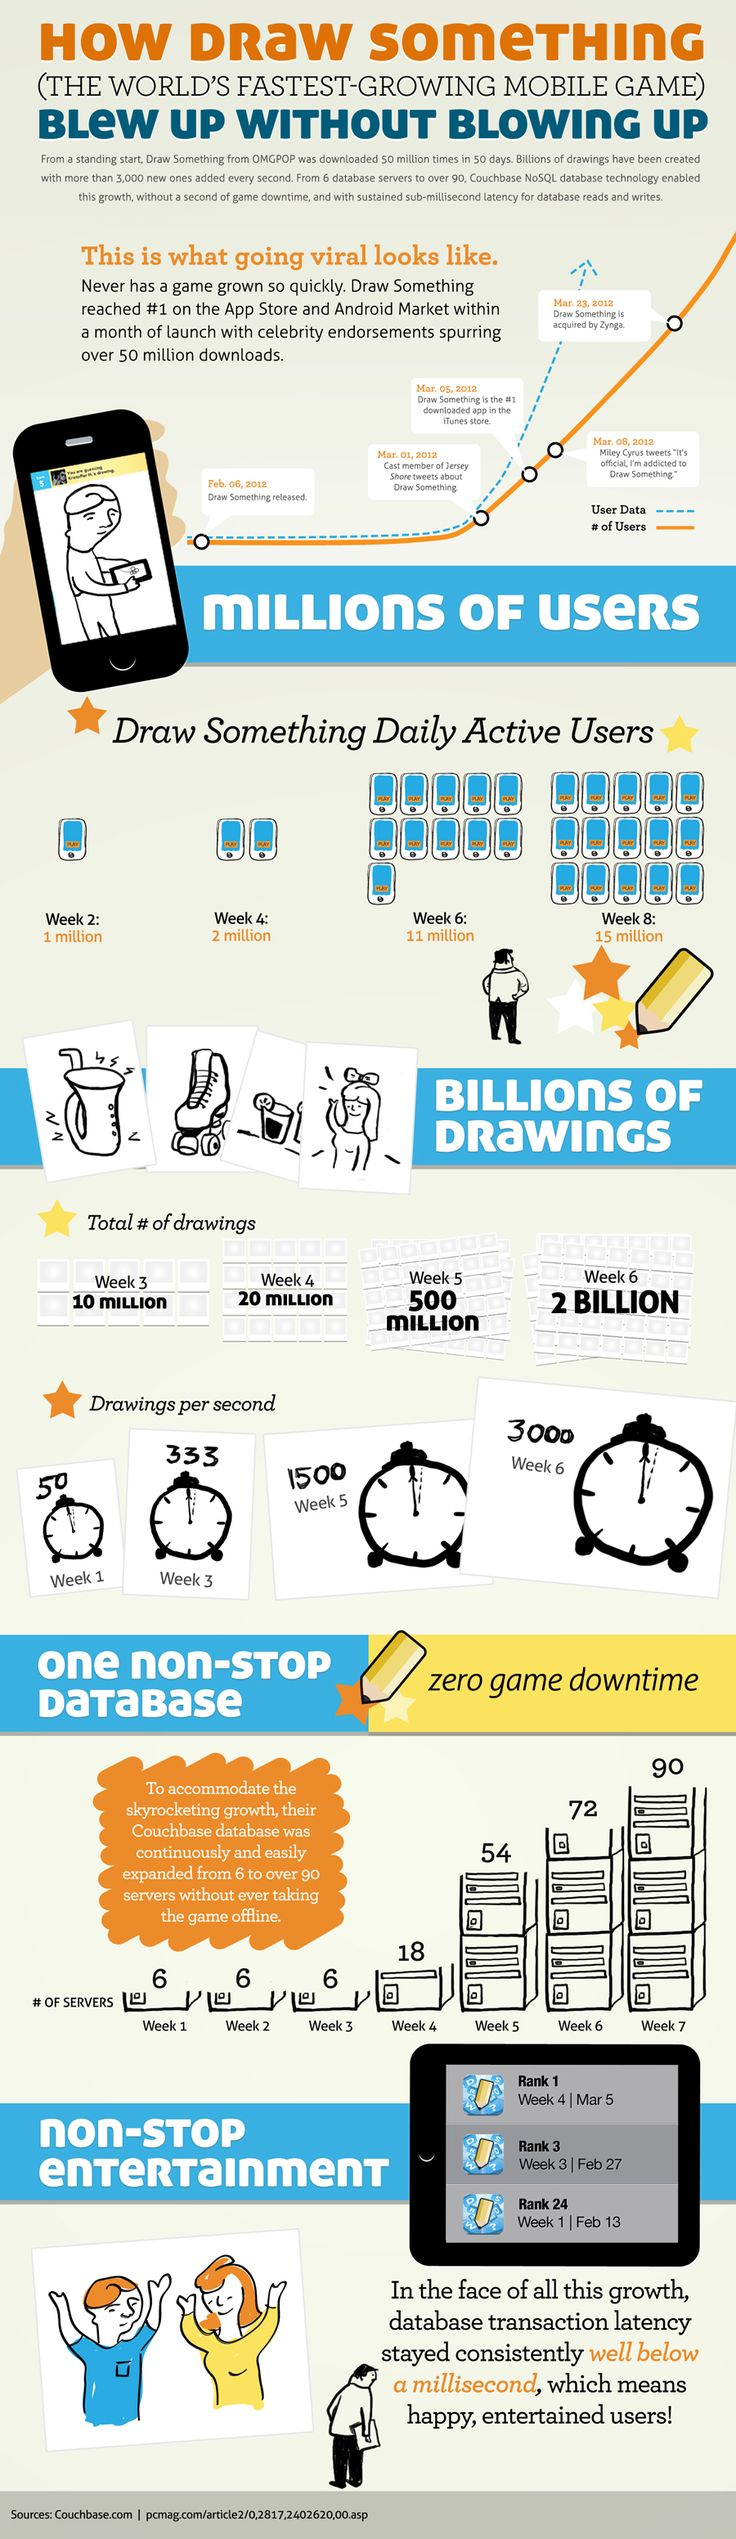 Cool #Infographic How Draw Something Blew Up Without BlowingUp: App, Games Infographics, Mobile Games, Games Astoundcommerce, Social Media, Draw Something, Mobile